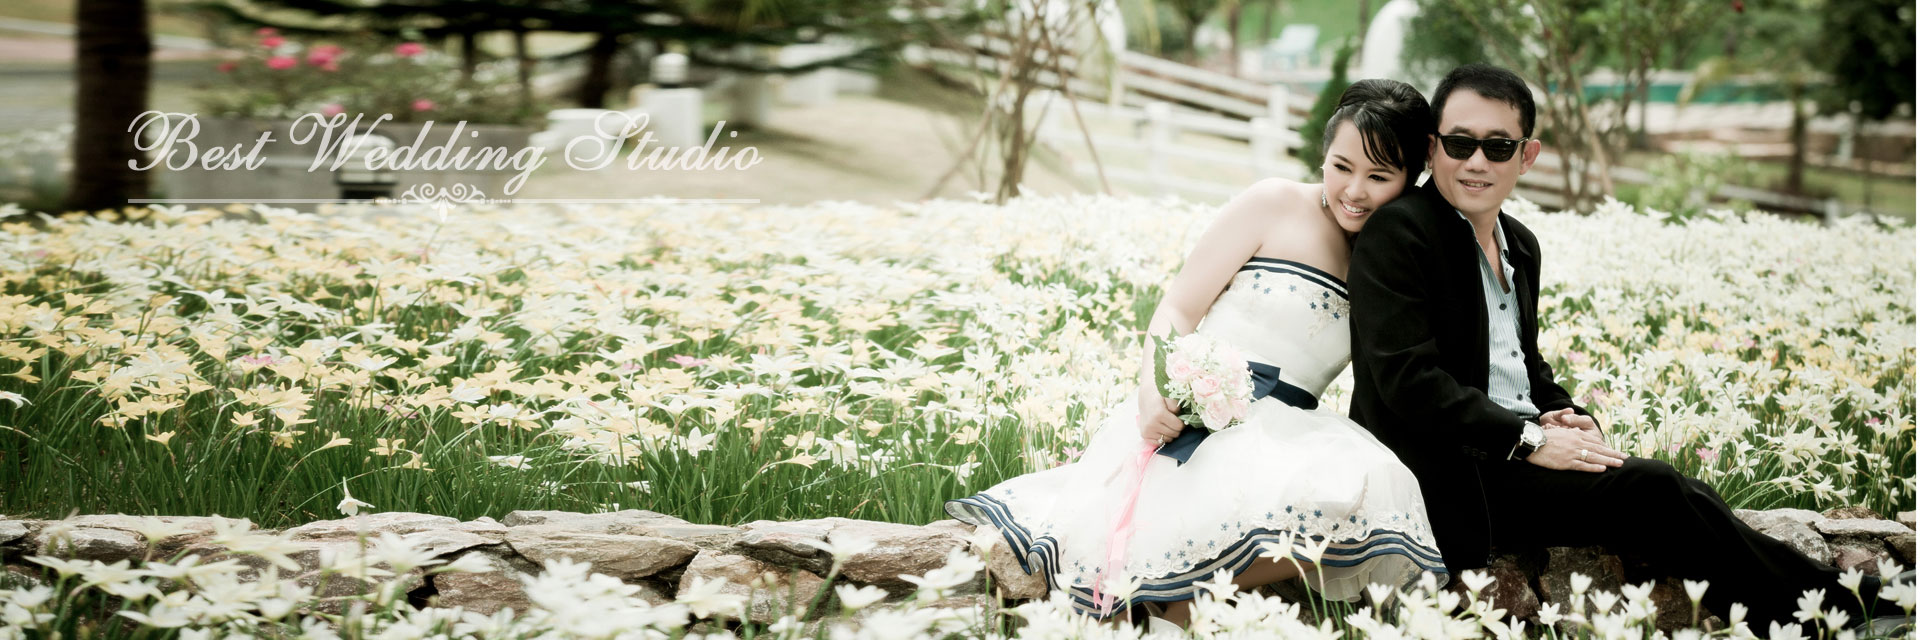 bestweddingstudio09